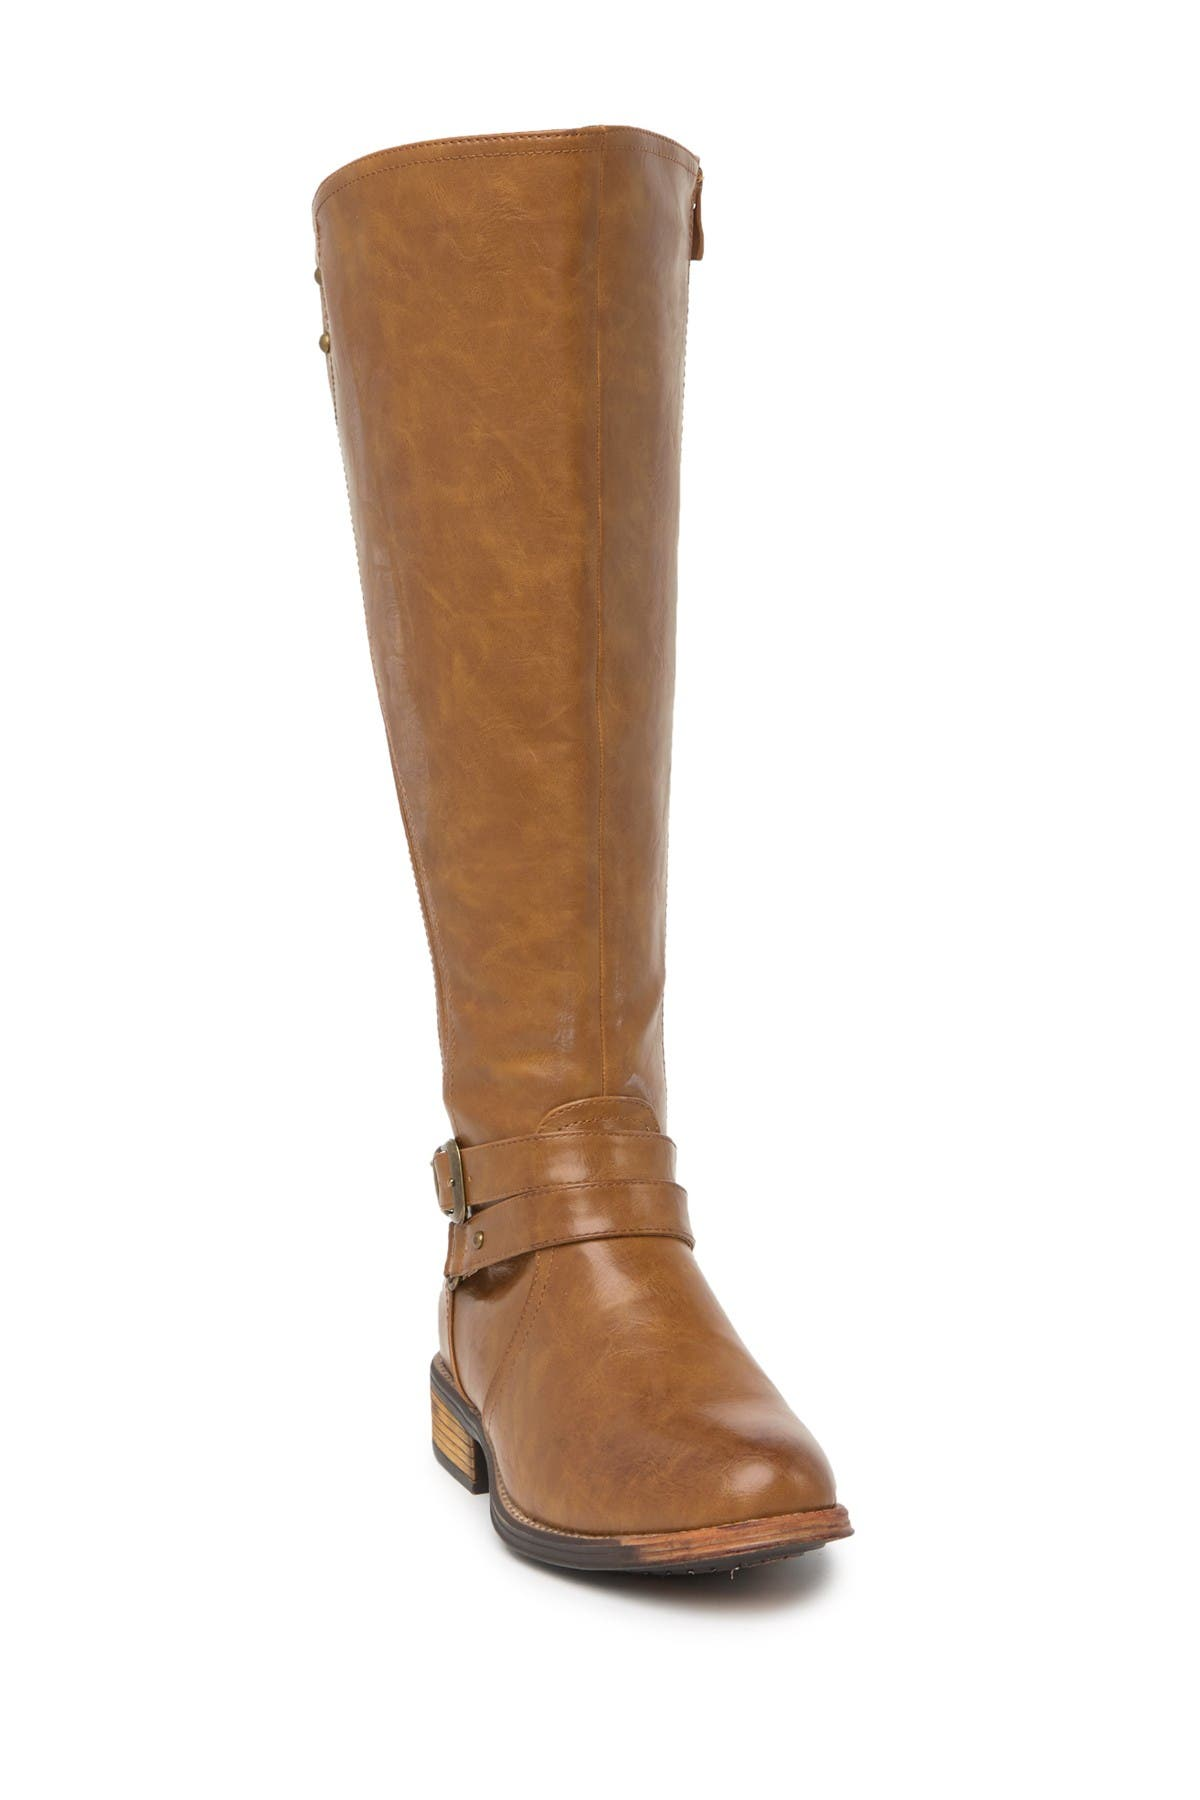 Image of Wanted Bergen Buckle Strap Tall Boot